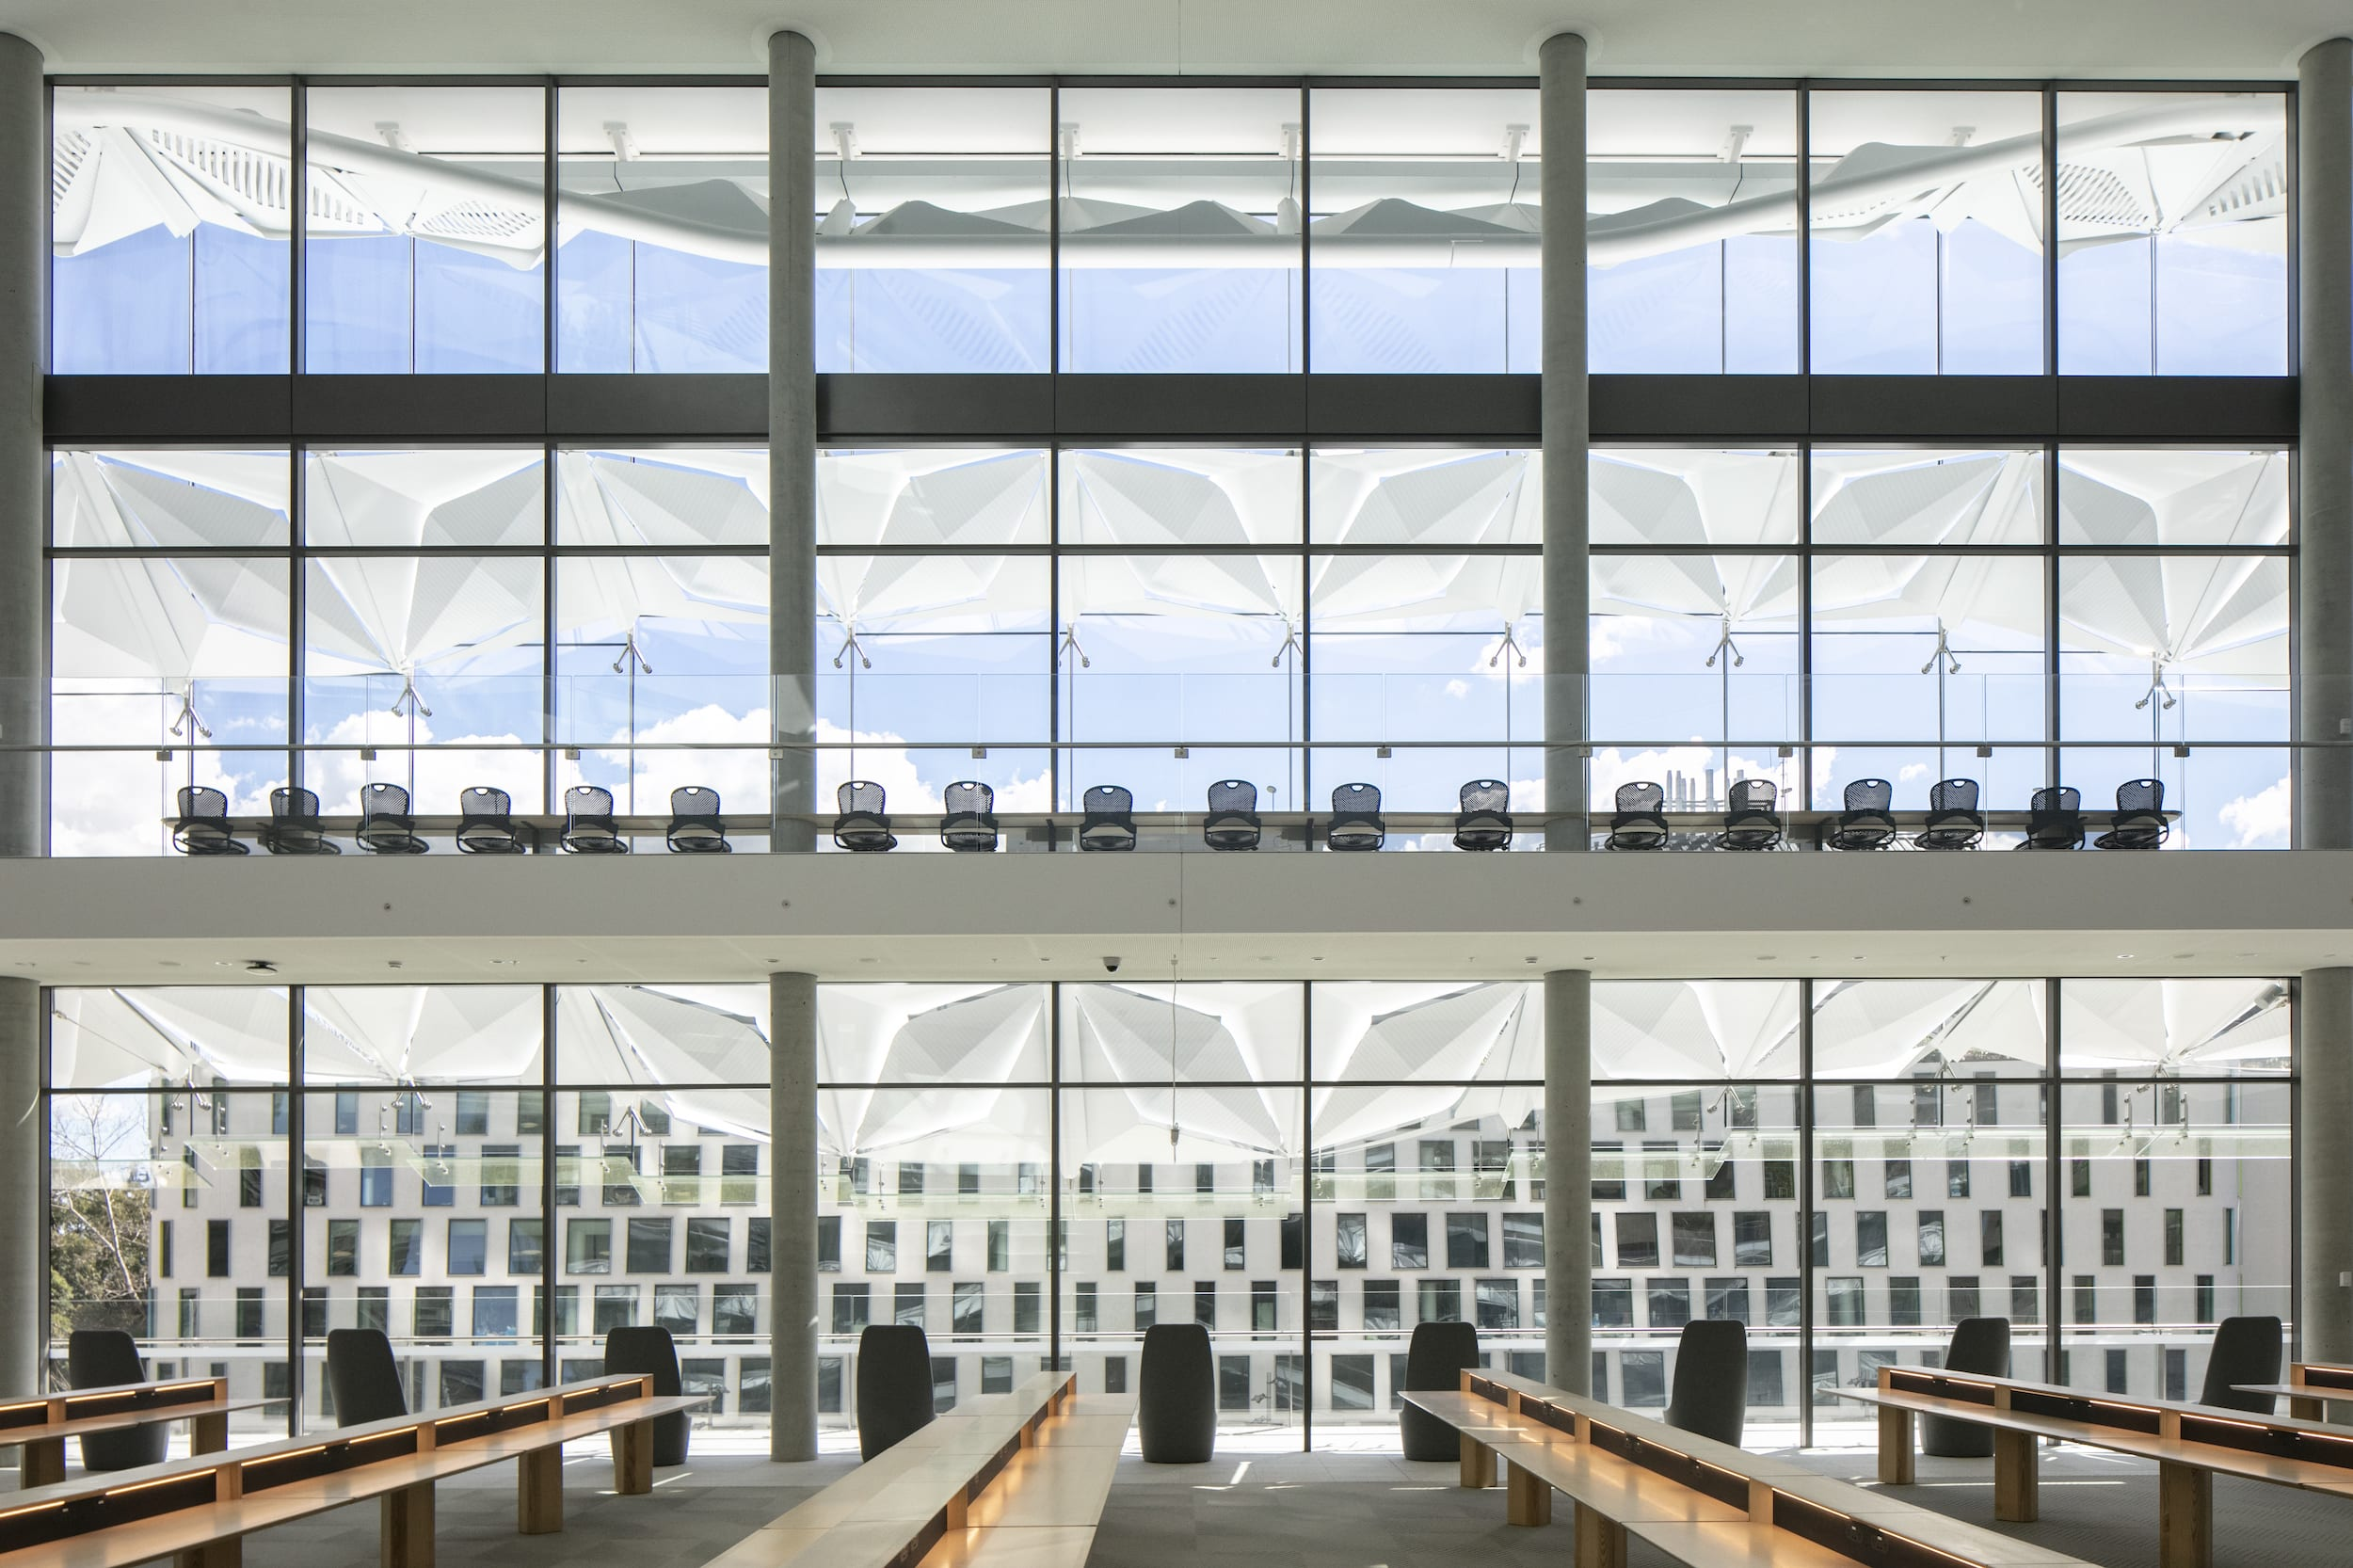 Innovative new sunshade technology provides solution to harsh light and heat